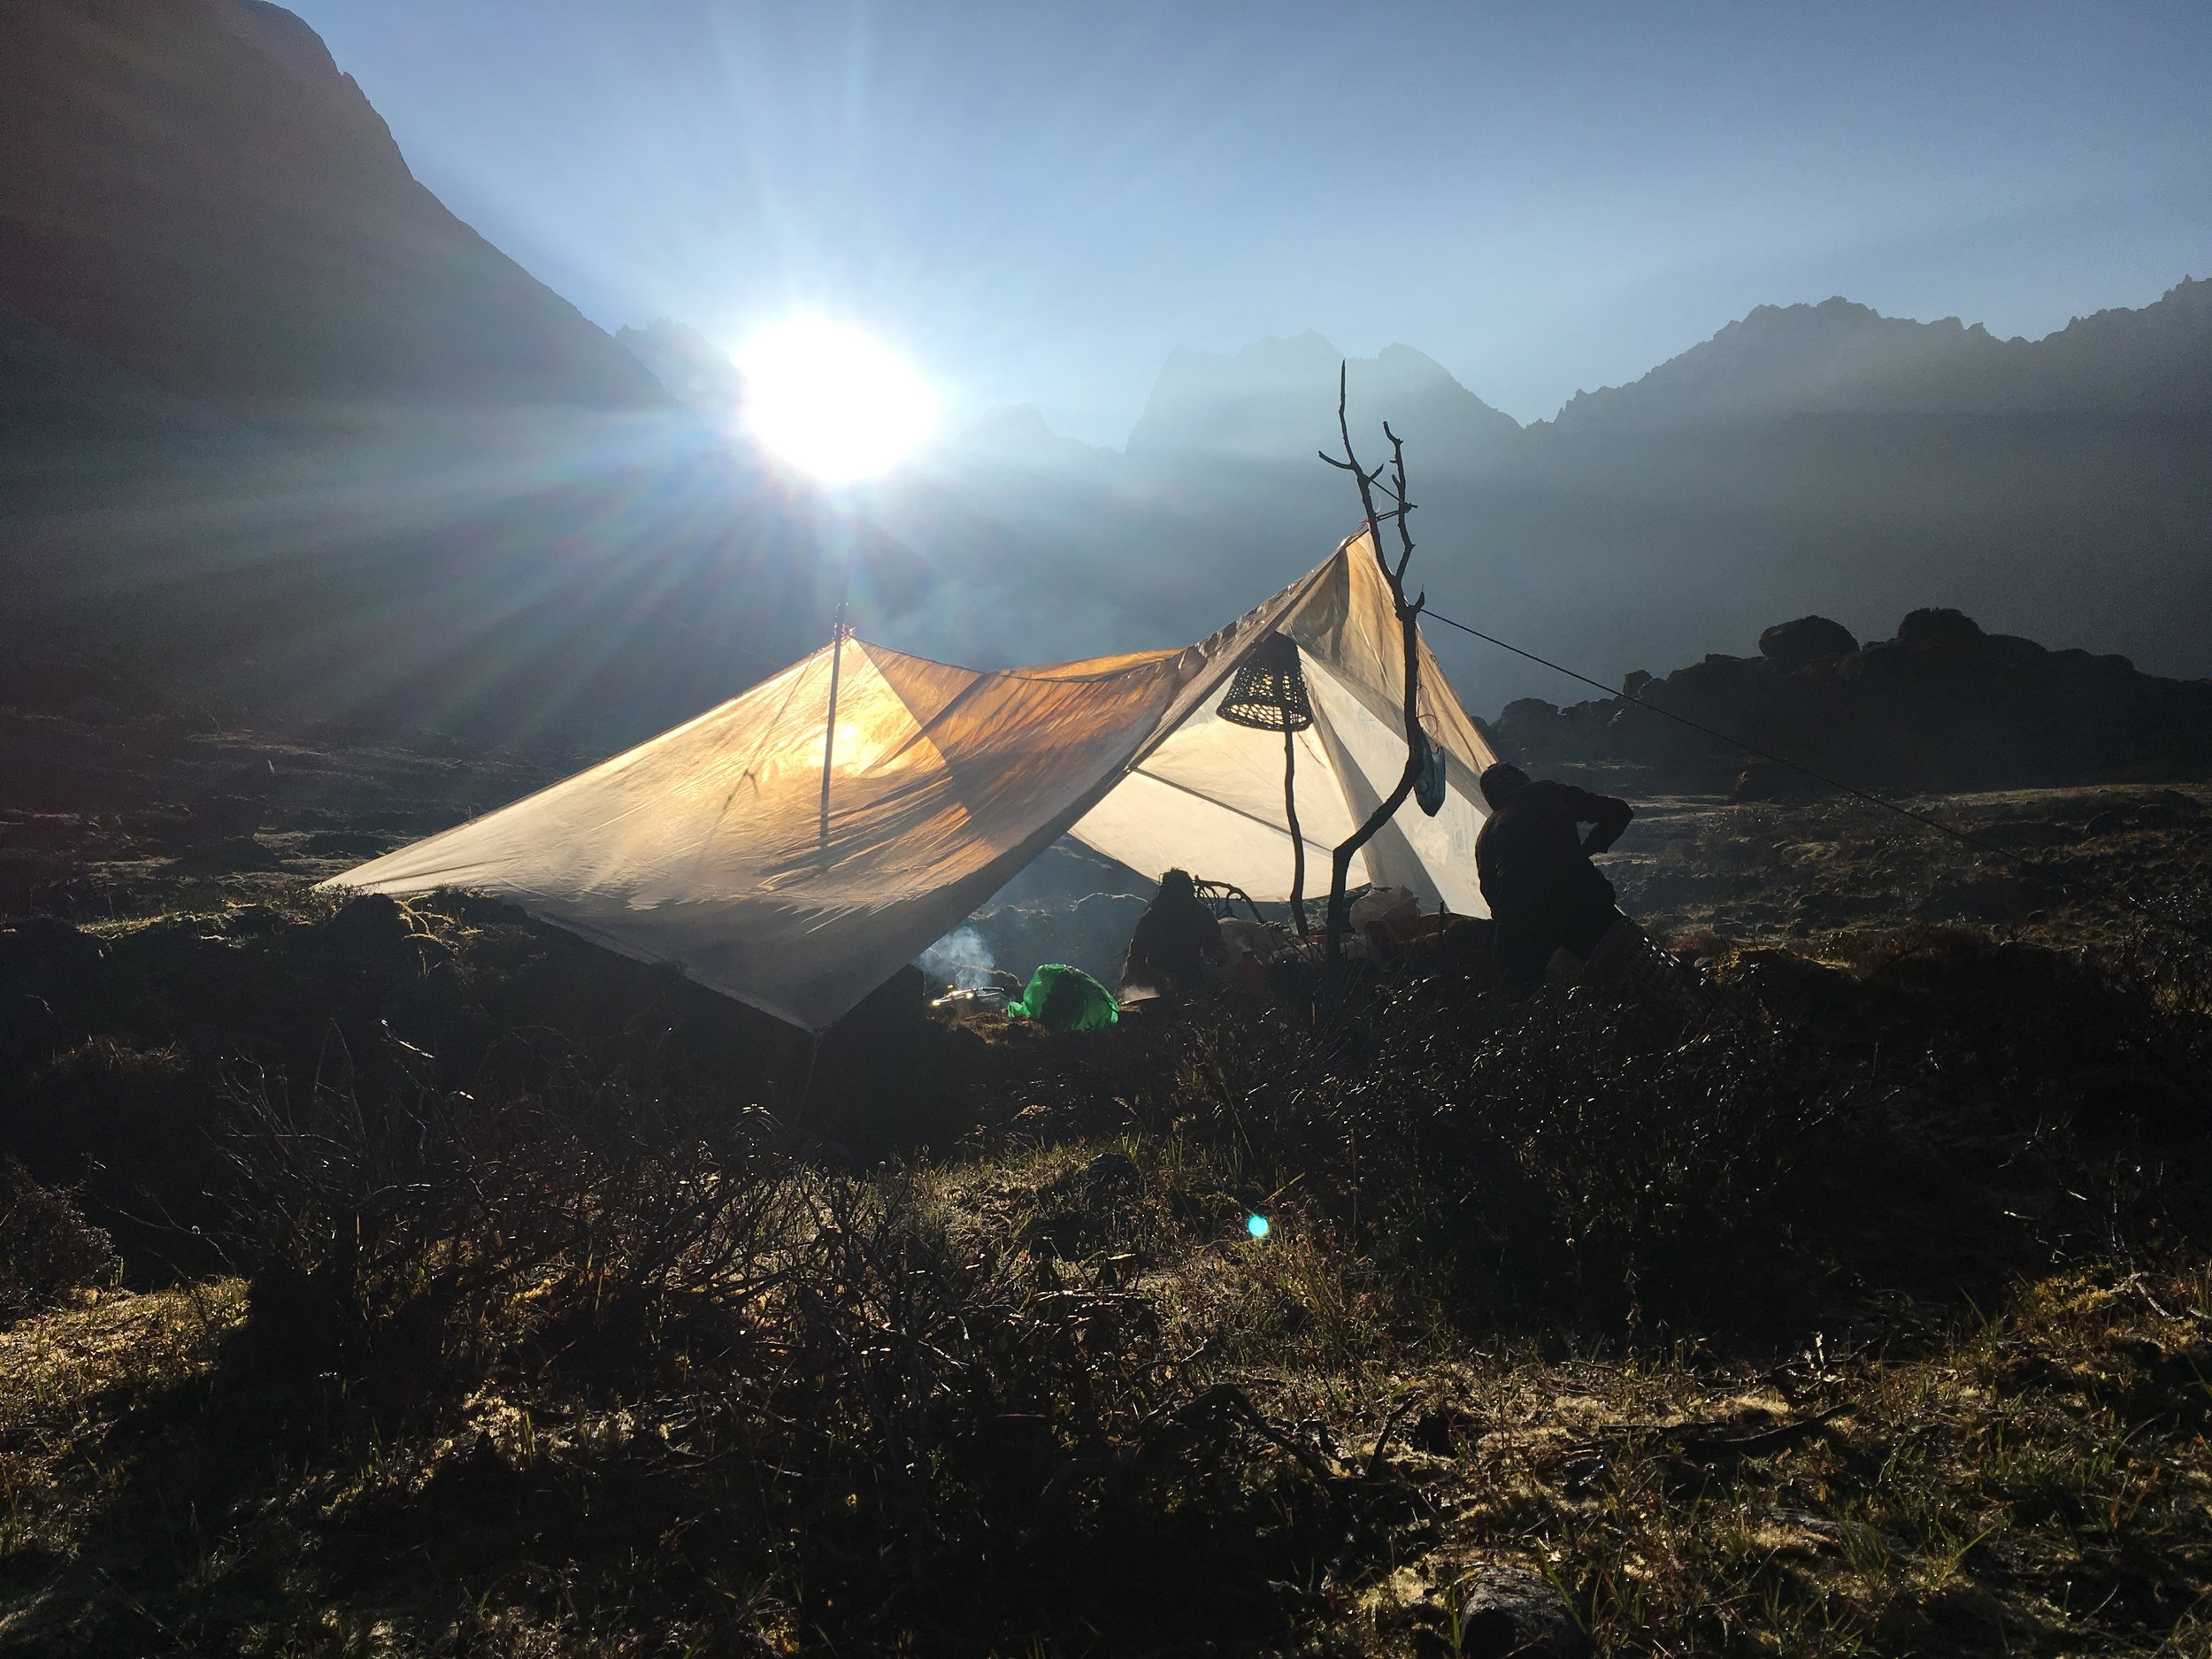 our highest camp, at 4200 meters elevation